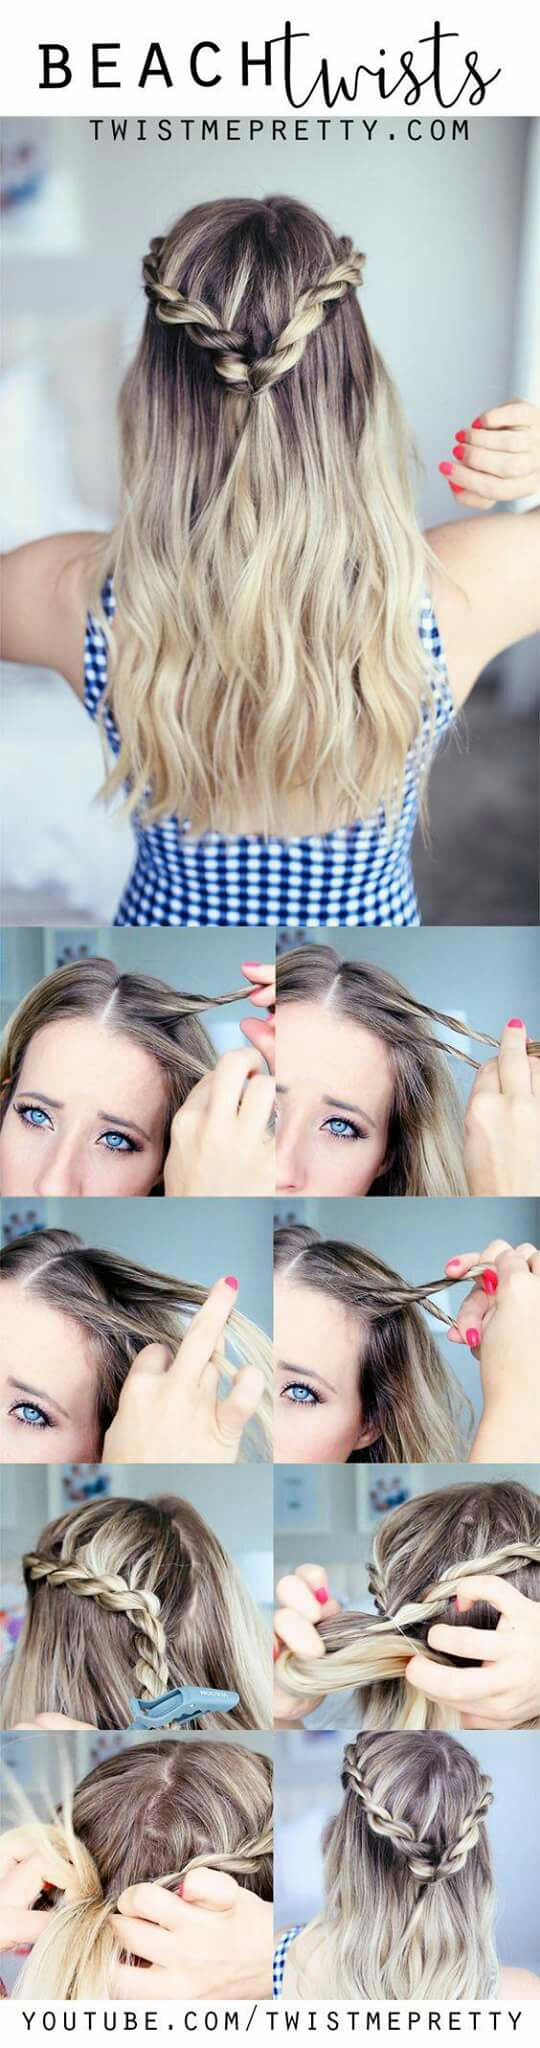 Pin by paige littlefield on hair stuff pinterest hair style